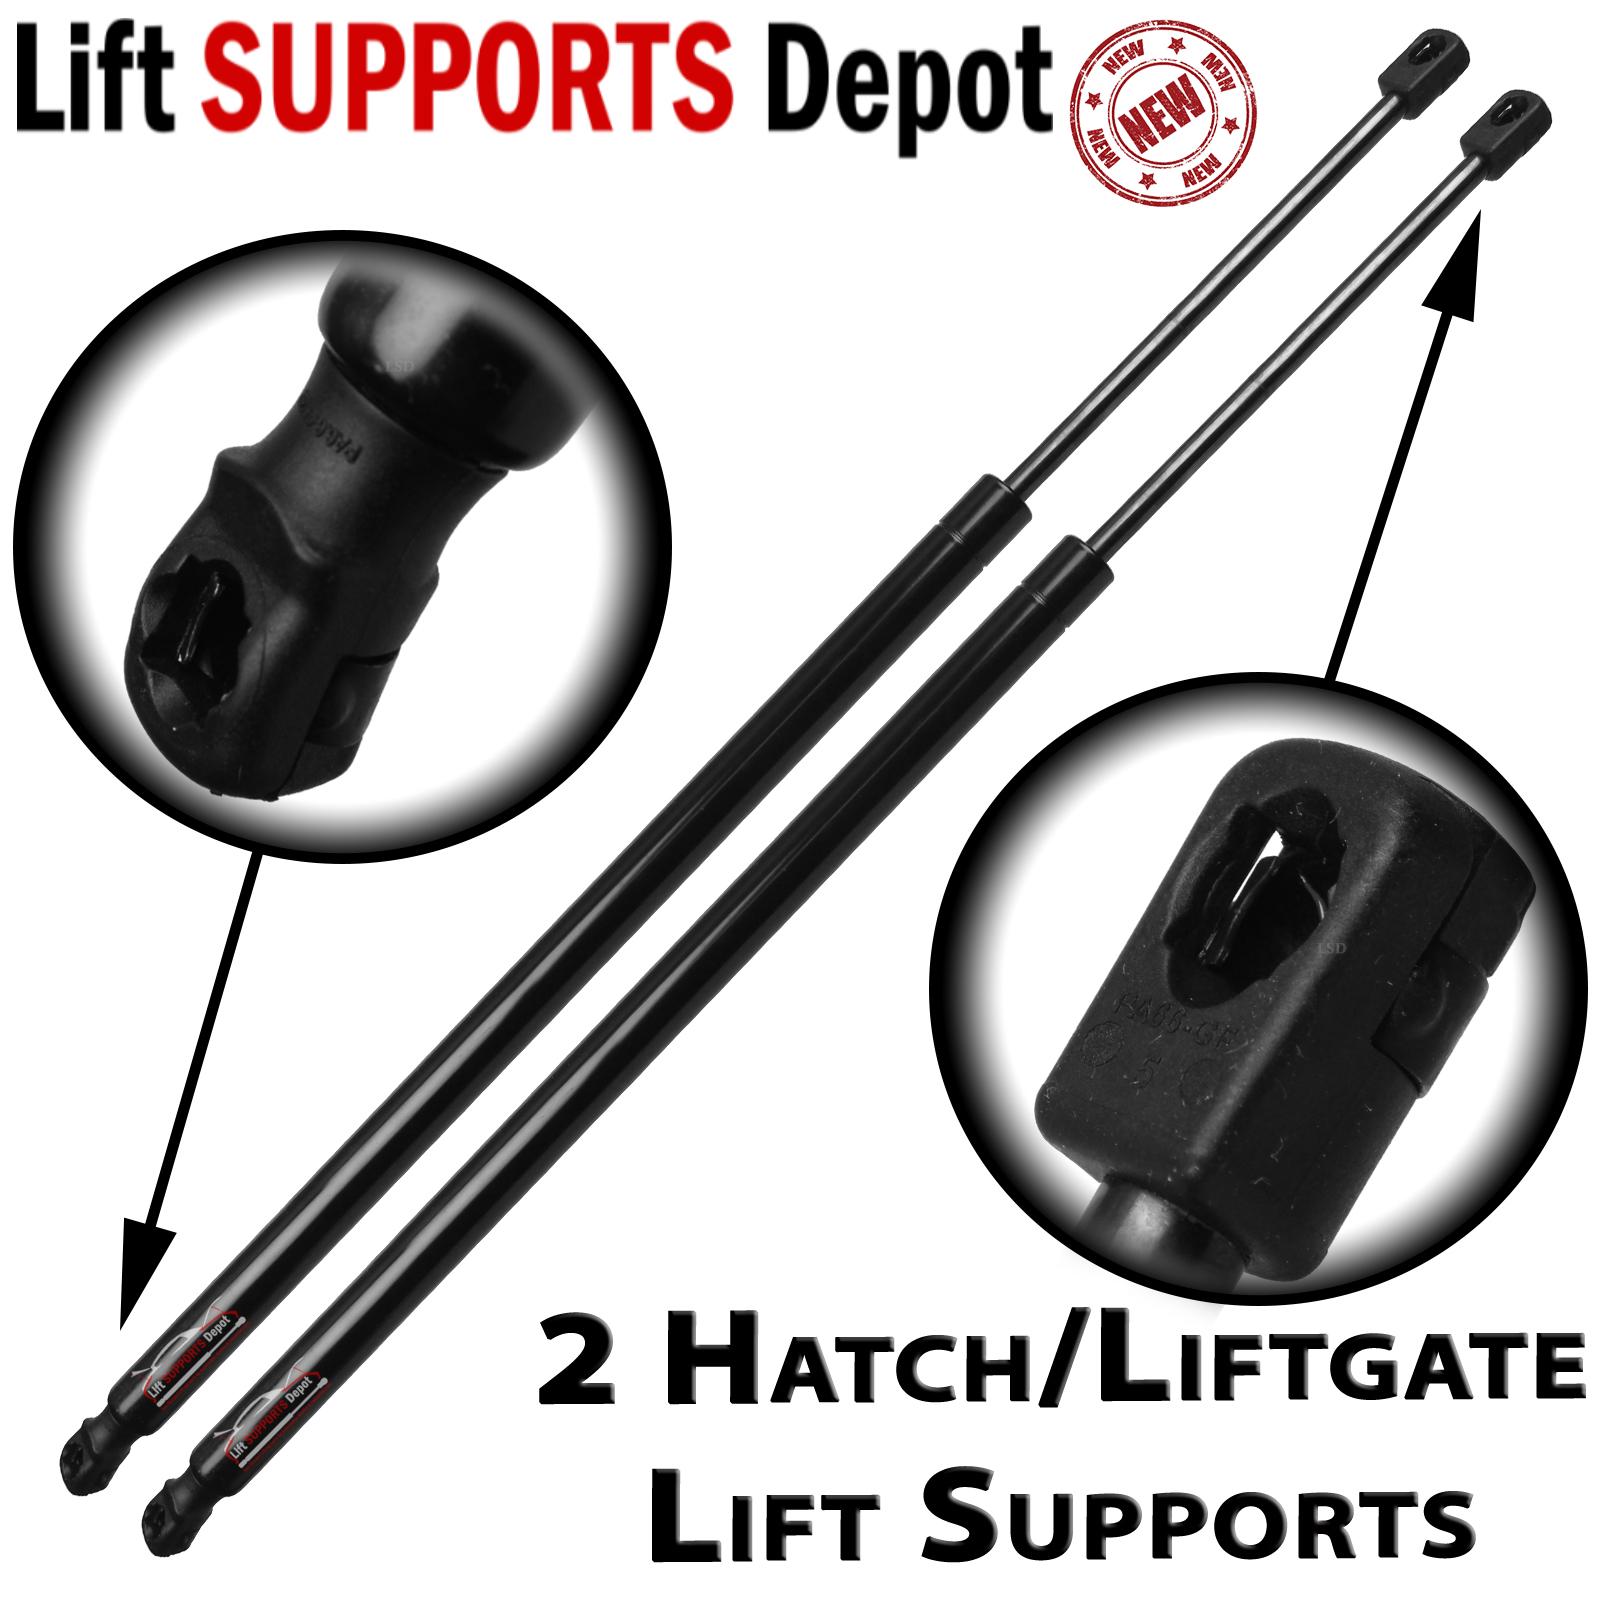 Qty (2) Fits VW Routan 2009 To 2014 Liftgate Lift Supports Struts With Power Gate - PM3478